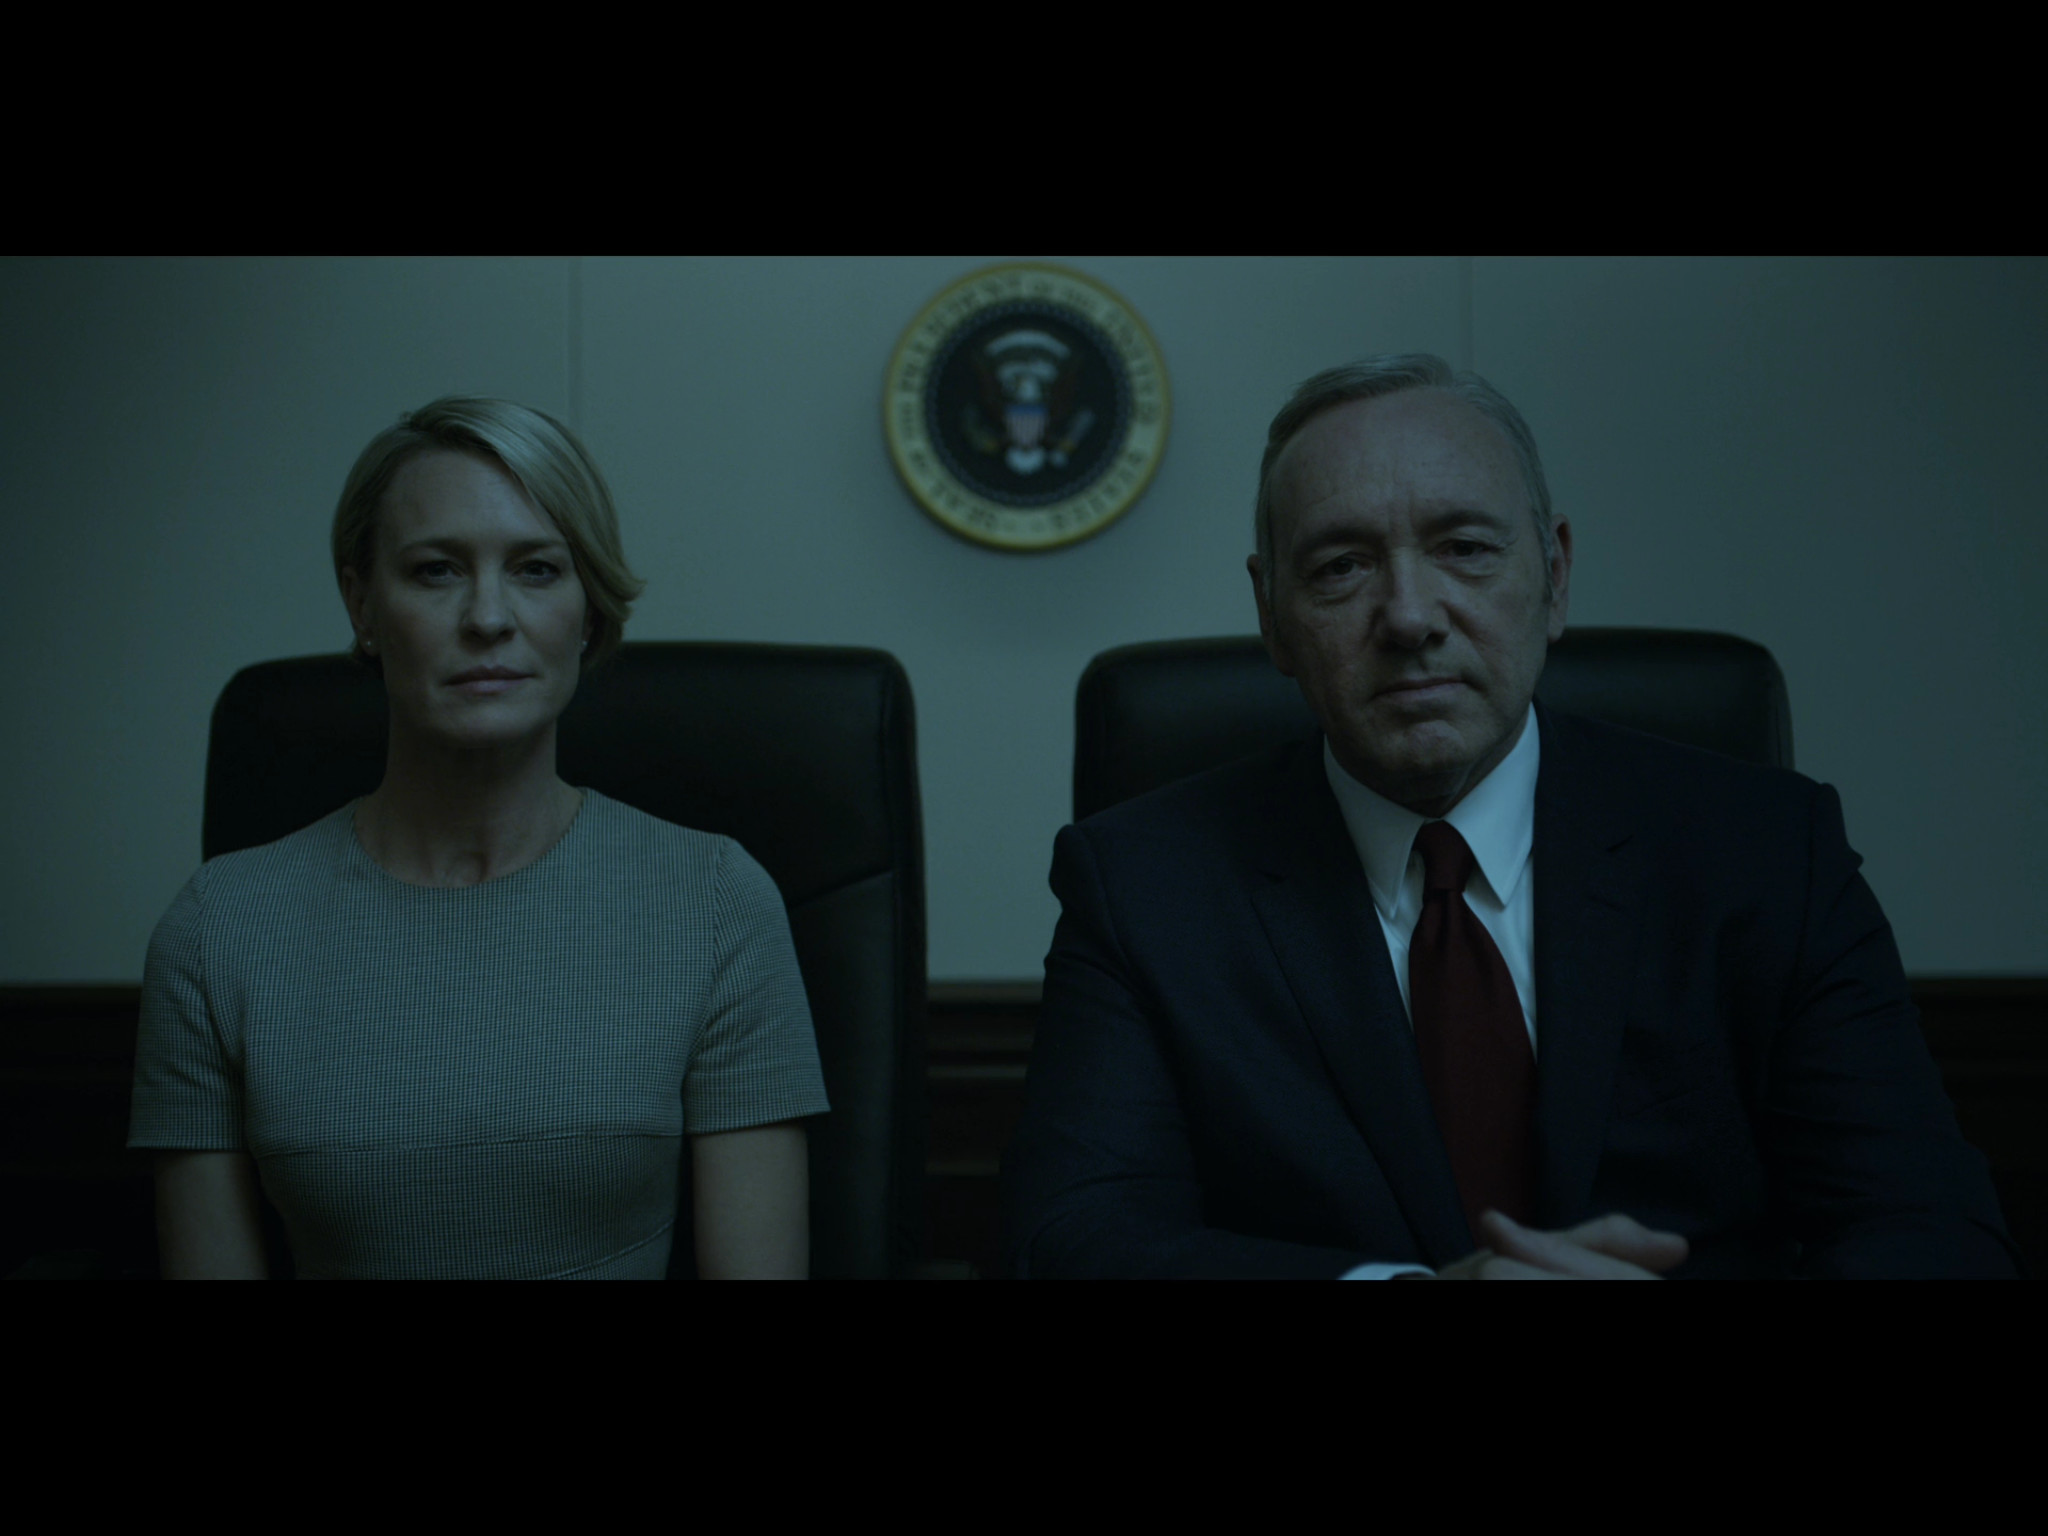 House of Cards Season 4 couple pic